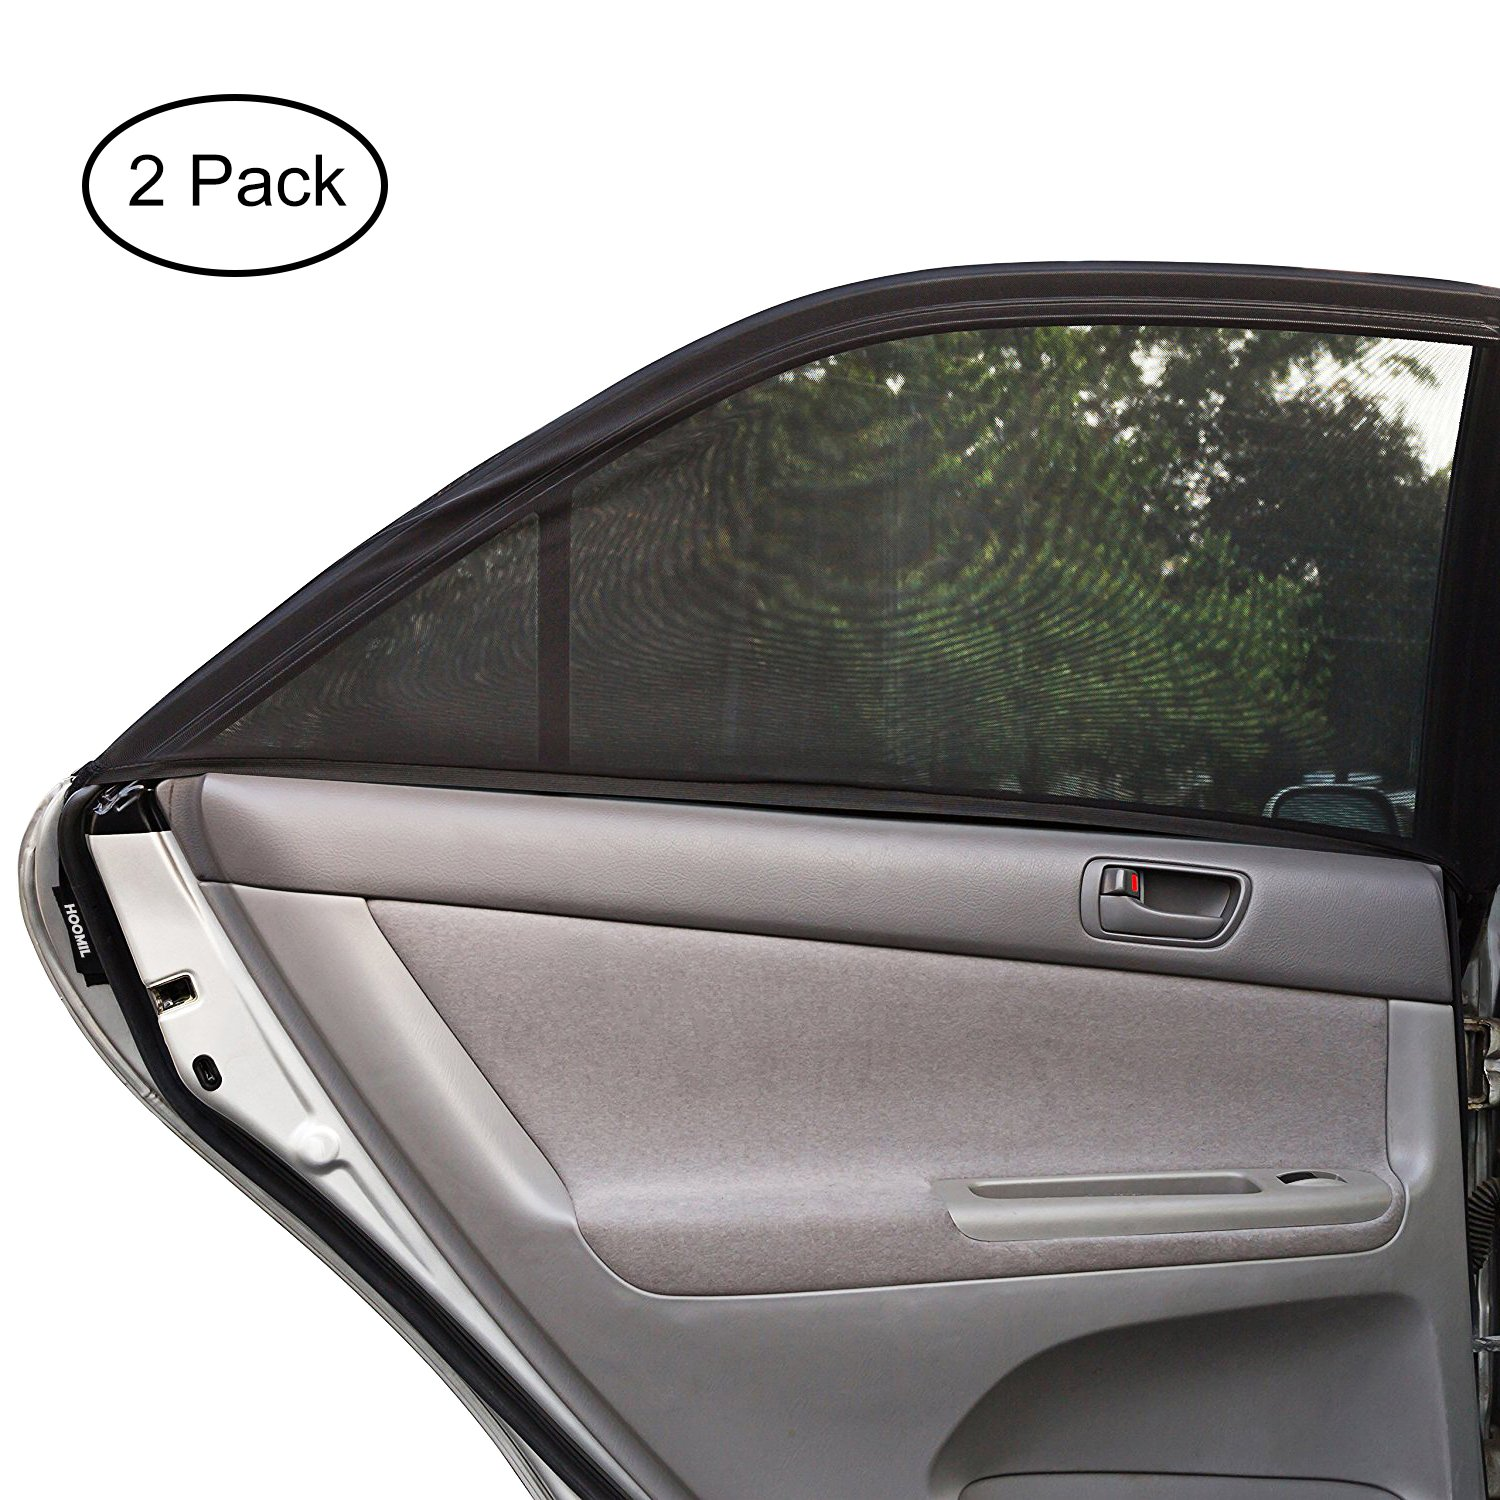 Car Side Window Sun Shade, HOOMIL (2 Pack) Breathable Mesh Baby Sunshade Protector Protects Your Kids and Pets from Sun and Harmful UV Rays Fit For Cars, Trucks and SUV's